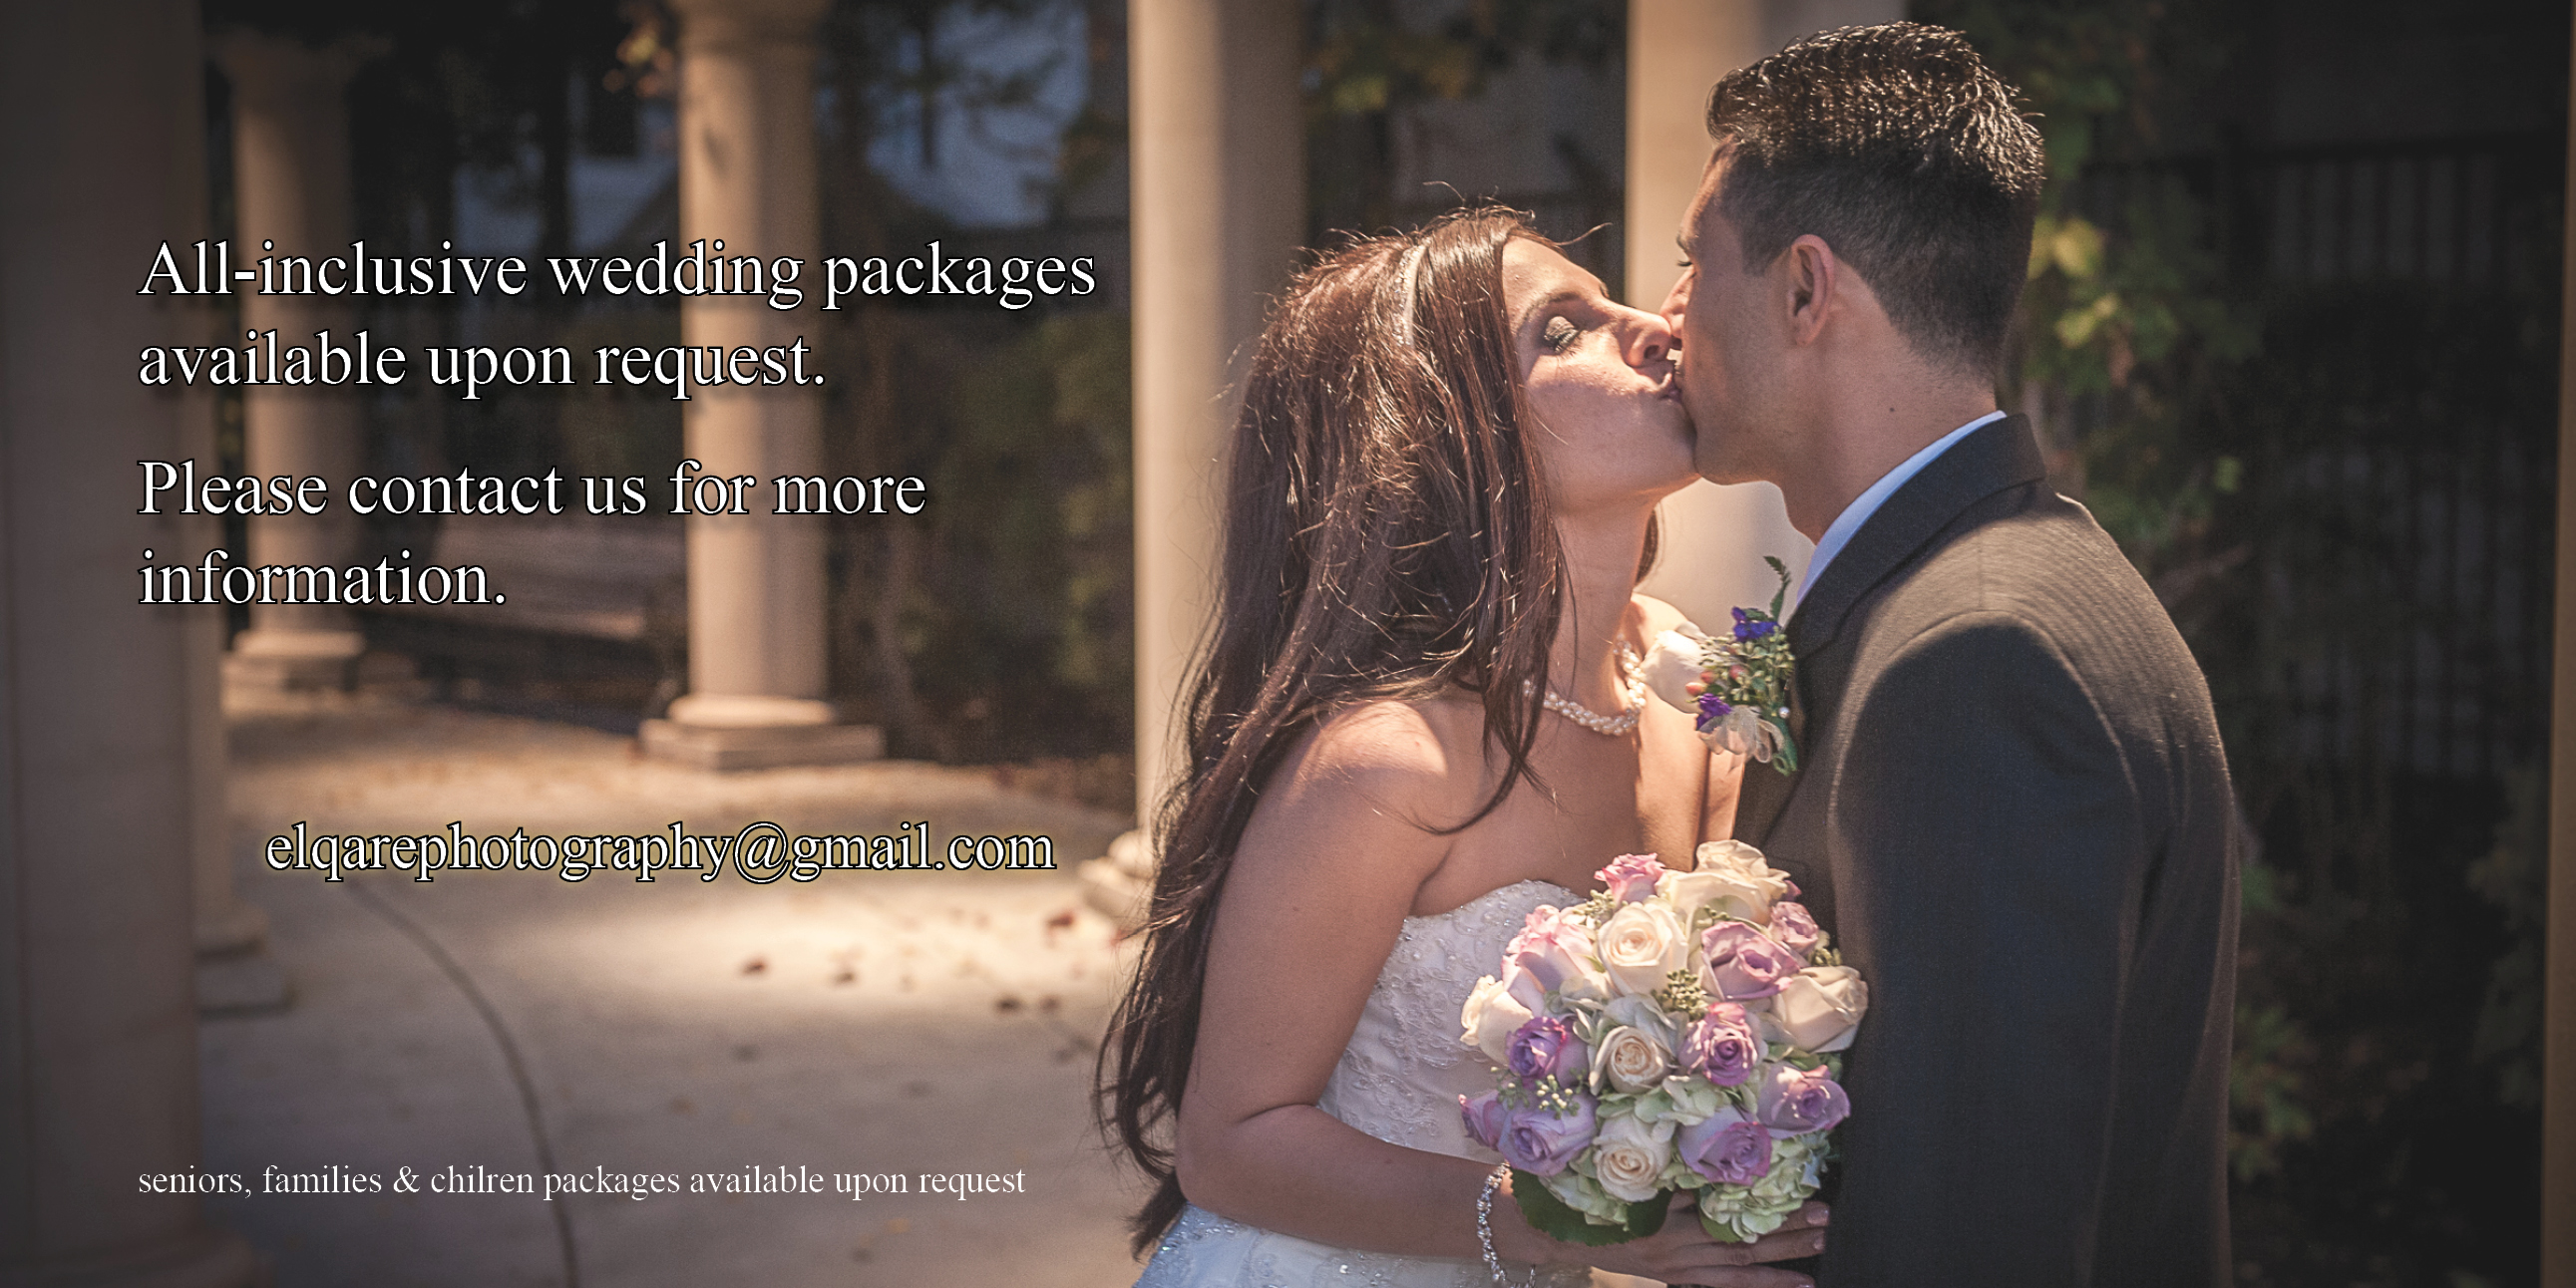 All-inclusive wedding packages available upon request.